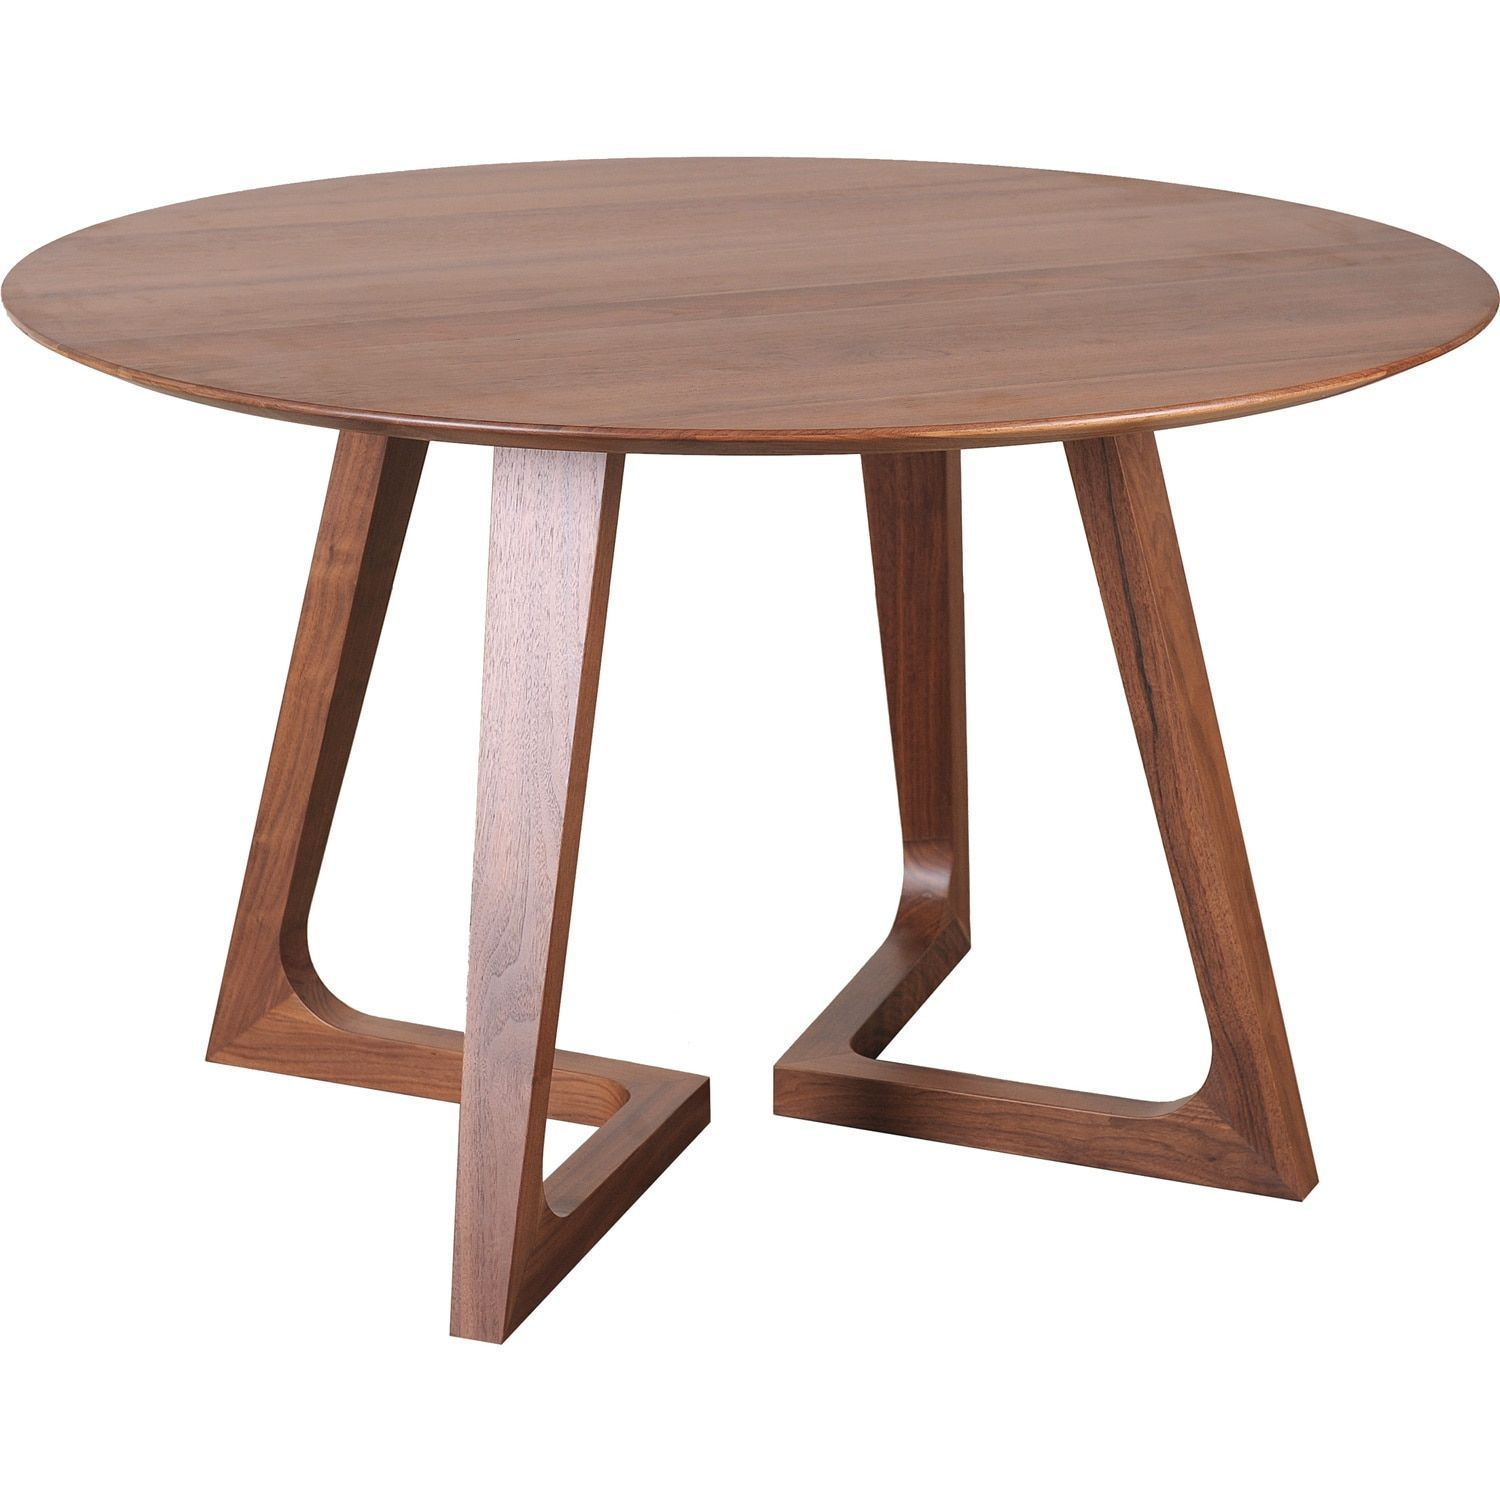 Aurelle Home Gideon Solid Walnut Modern Round Kitchen Table